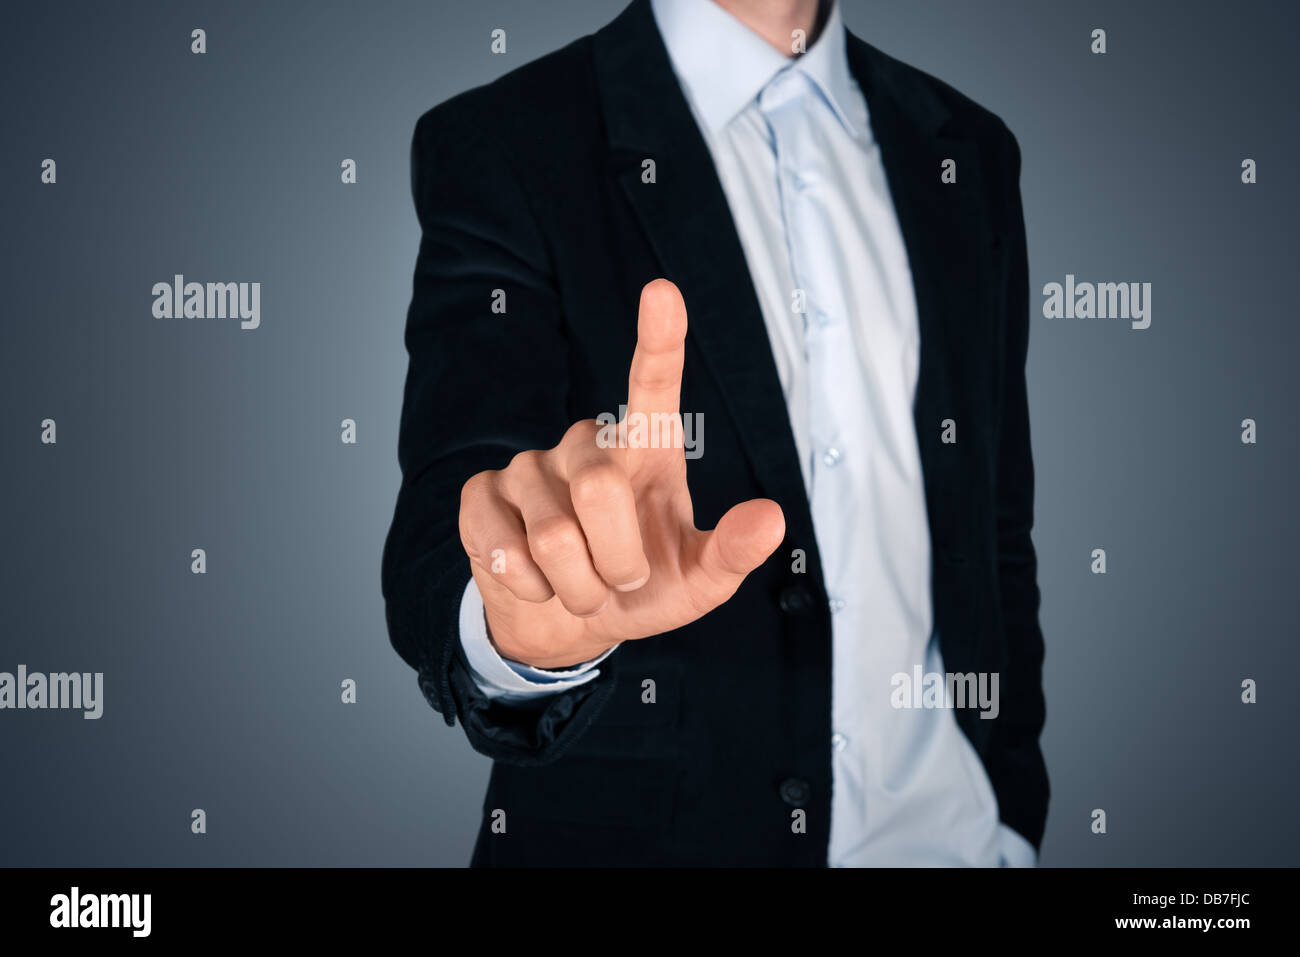 Portrait of handsome businessman touching a blank invisible screen. Touch screen concept image. Isolated on dark - Stock Image